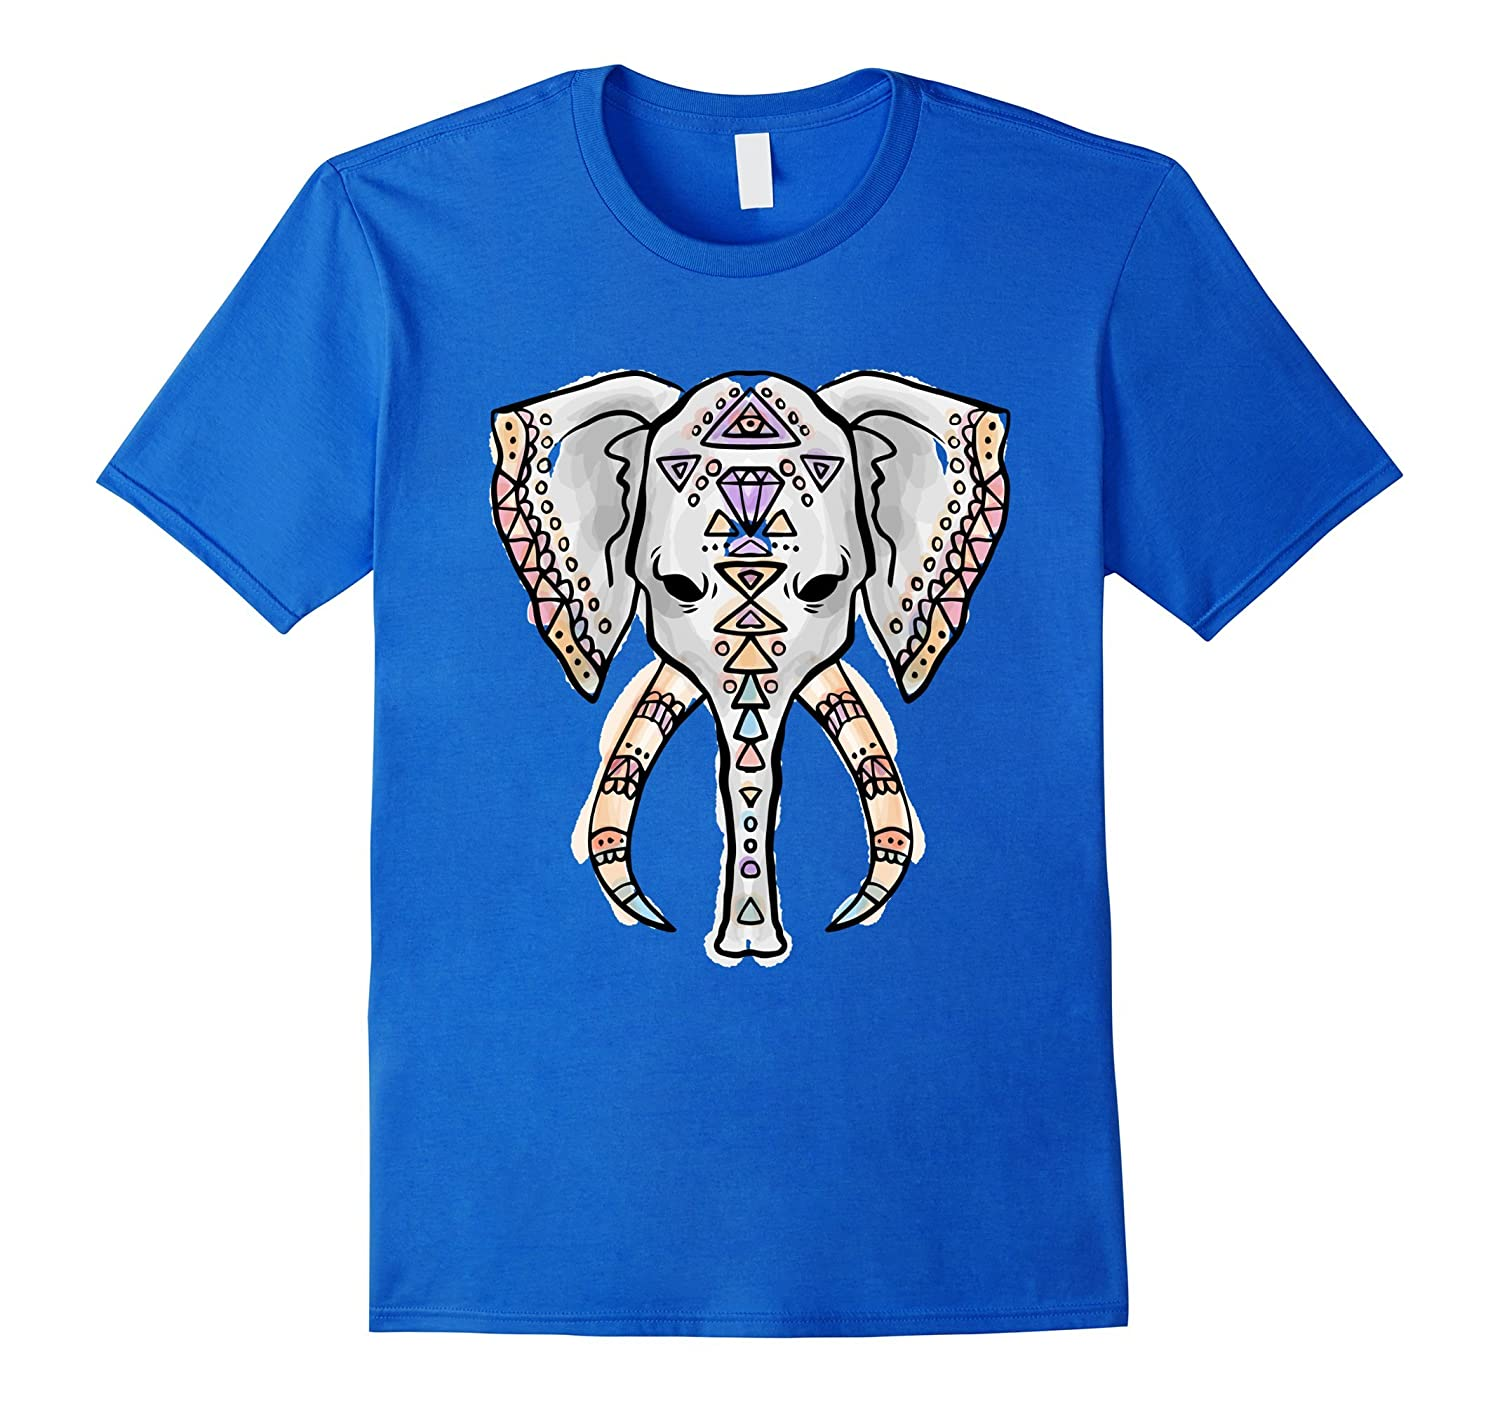 Ethnic Decorative Boho Style Elephant Head T-Shirt-AZP